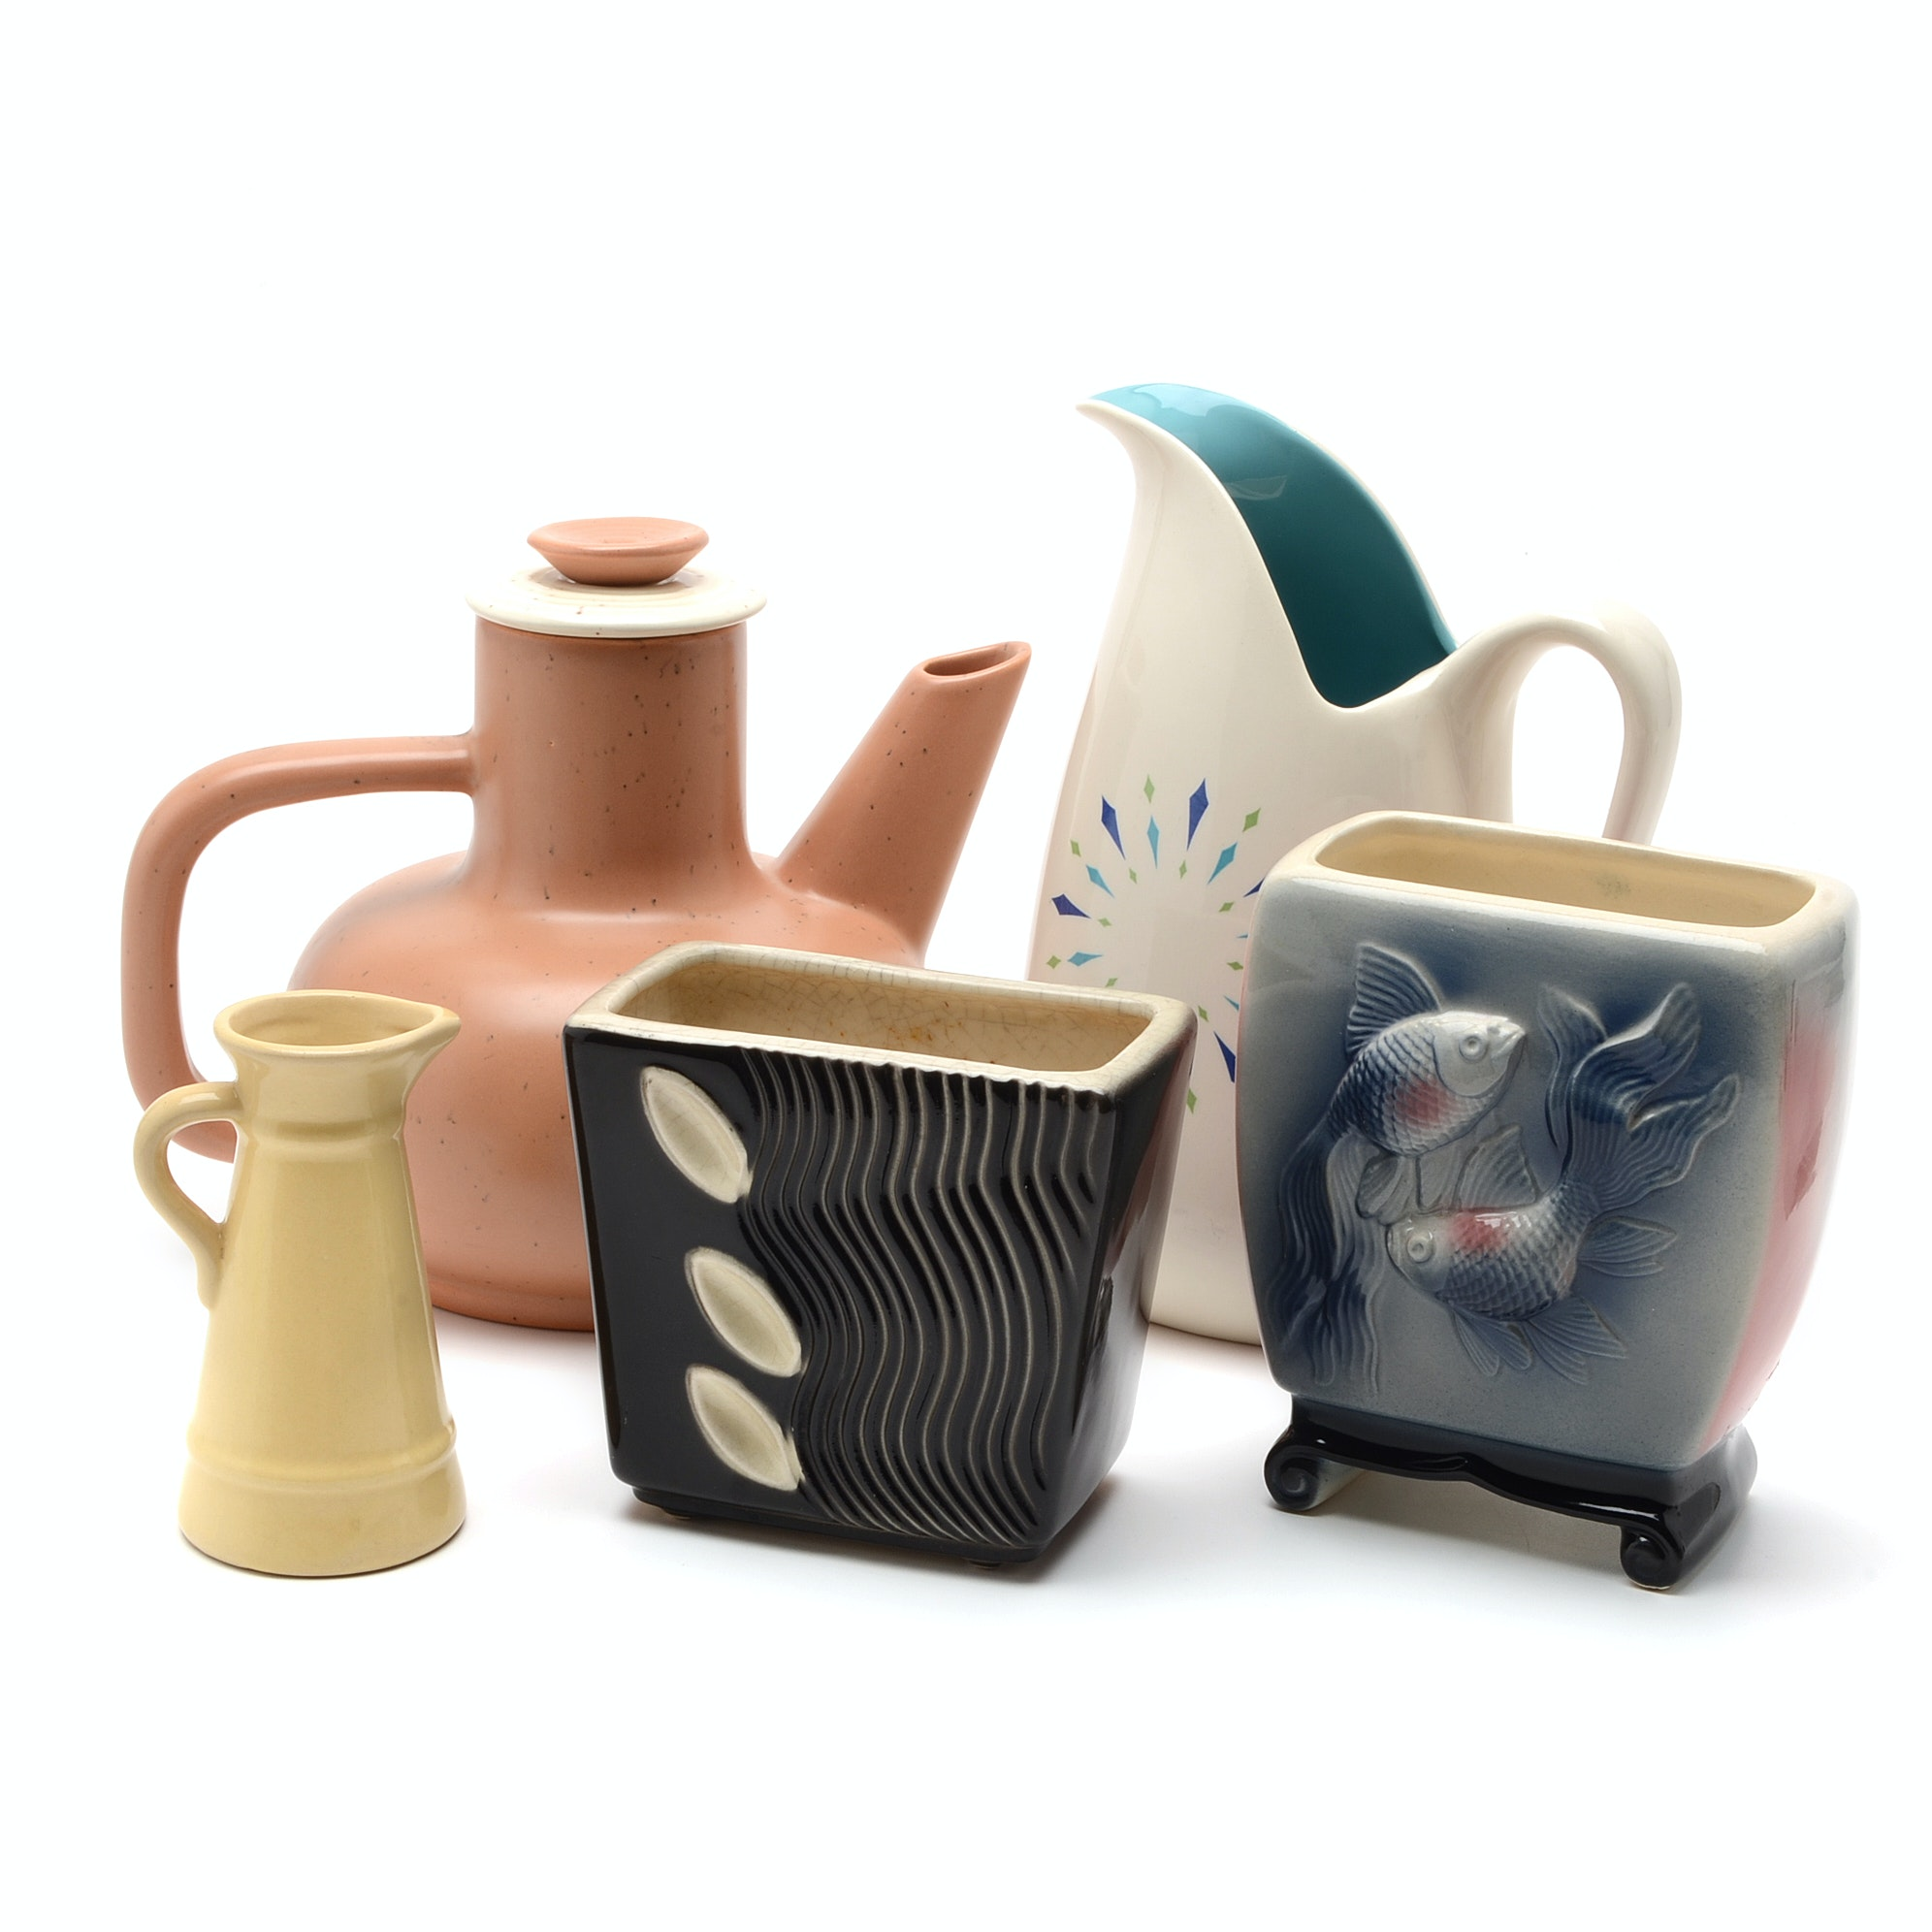 Assortment of Mid Century Modern Pitchers, Teapot, and Vases